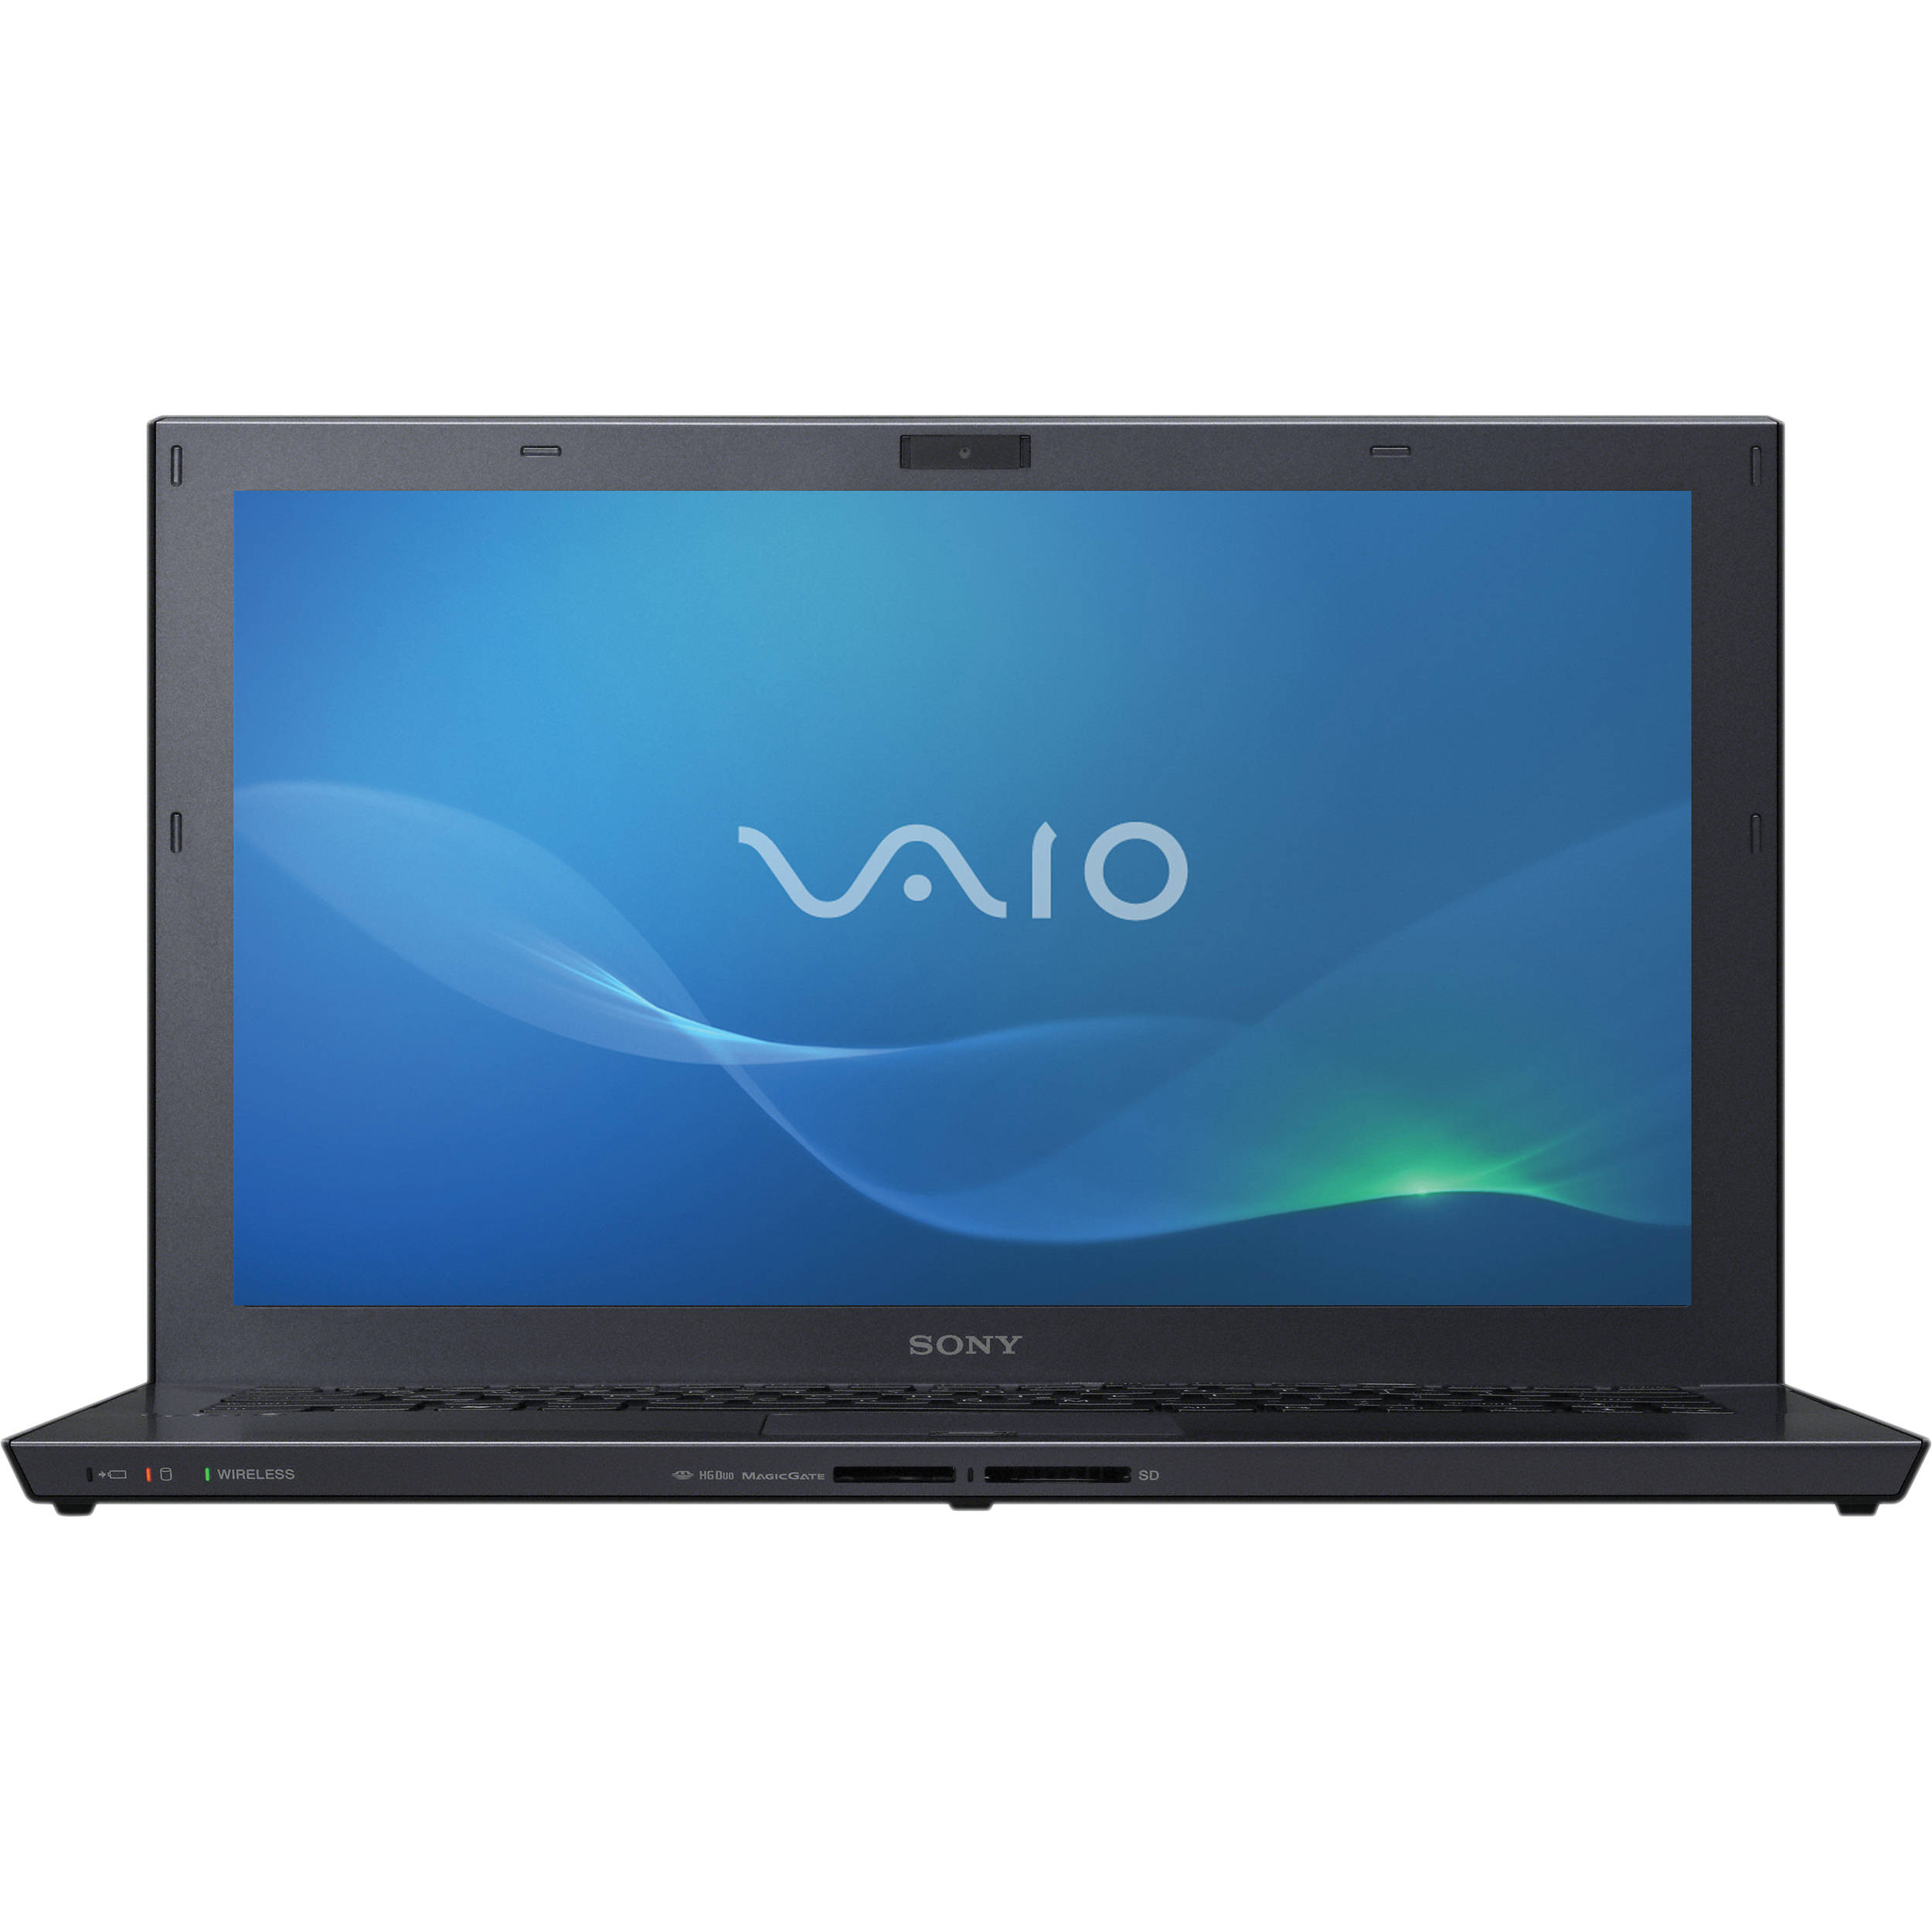 Sony Vaio VPCZ212GX/B AuthenTec FingerPrint Sensor New